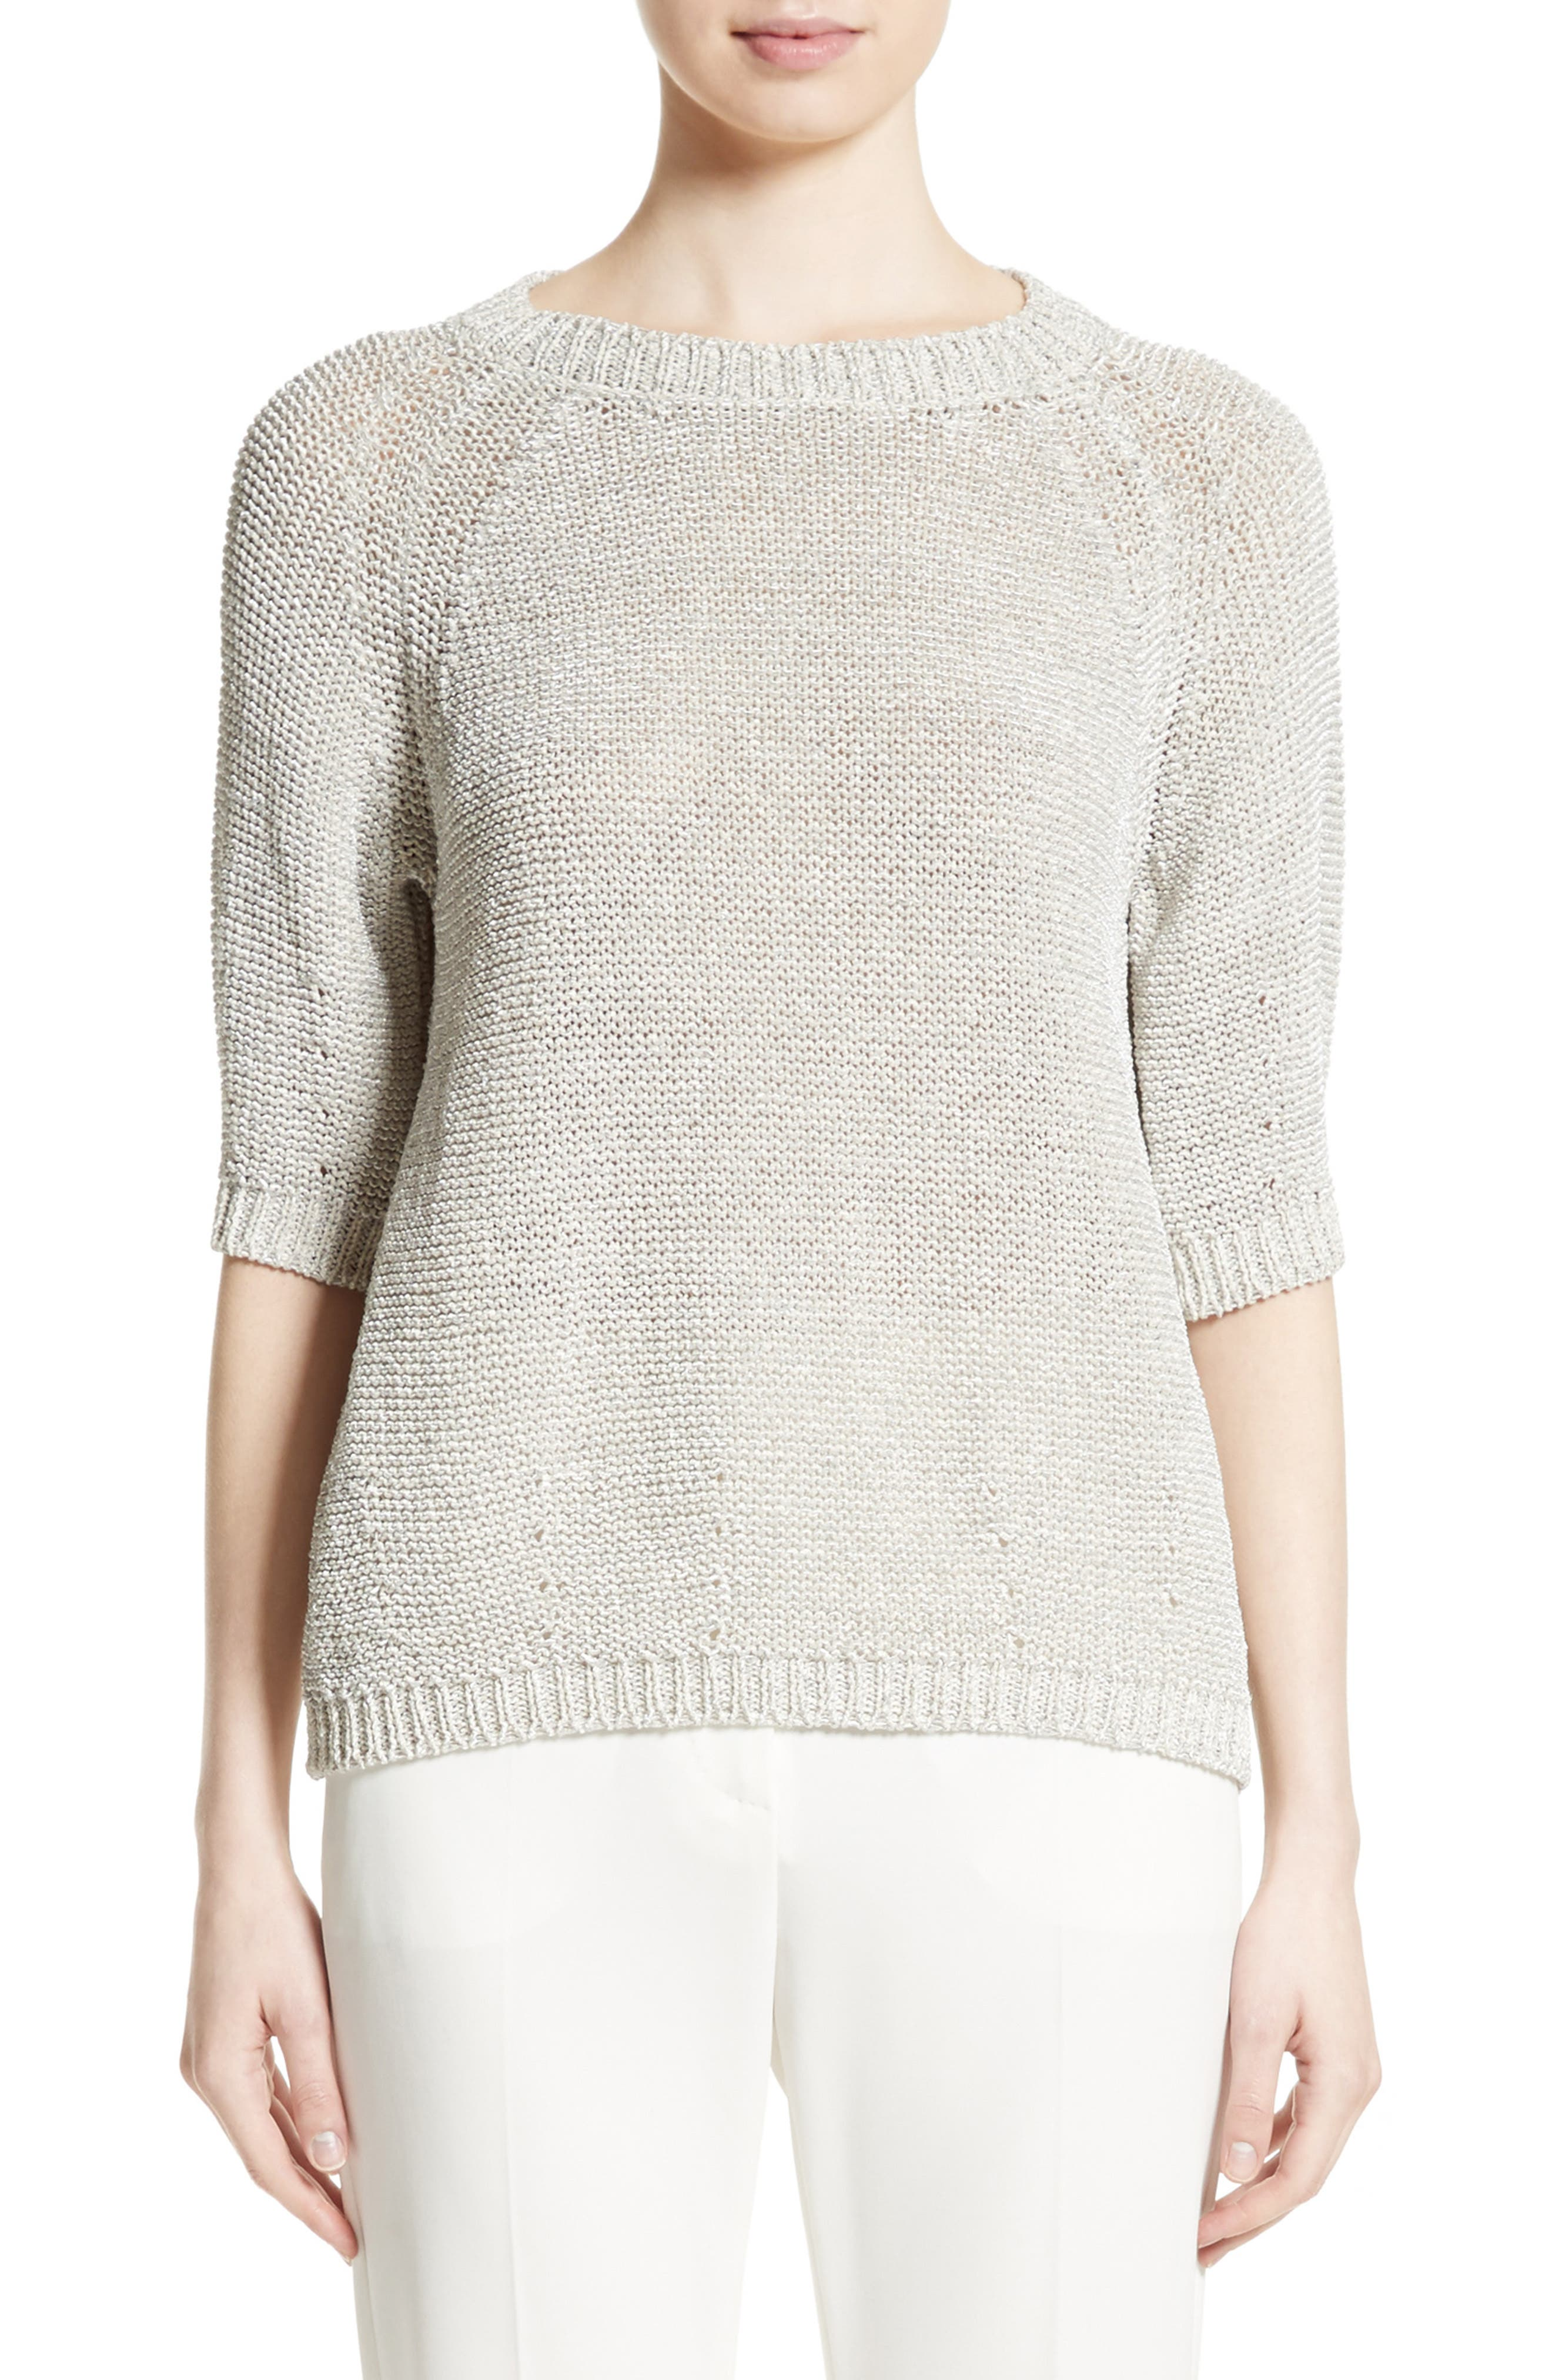 Main Image - Max Mara Cotton Blend Sweater